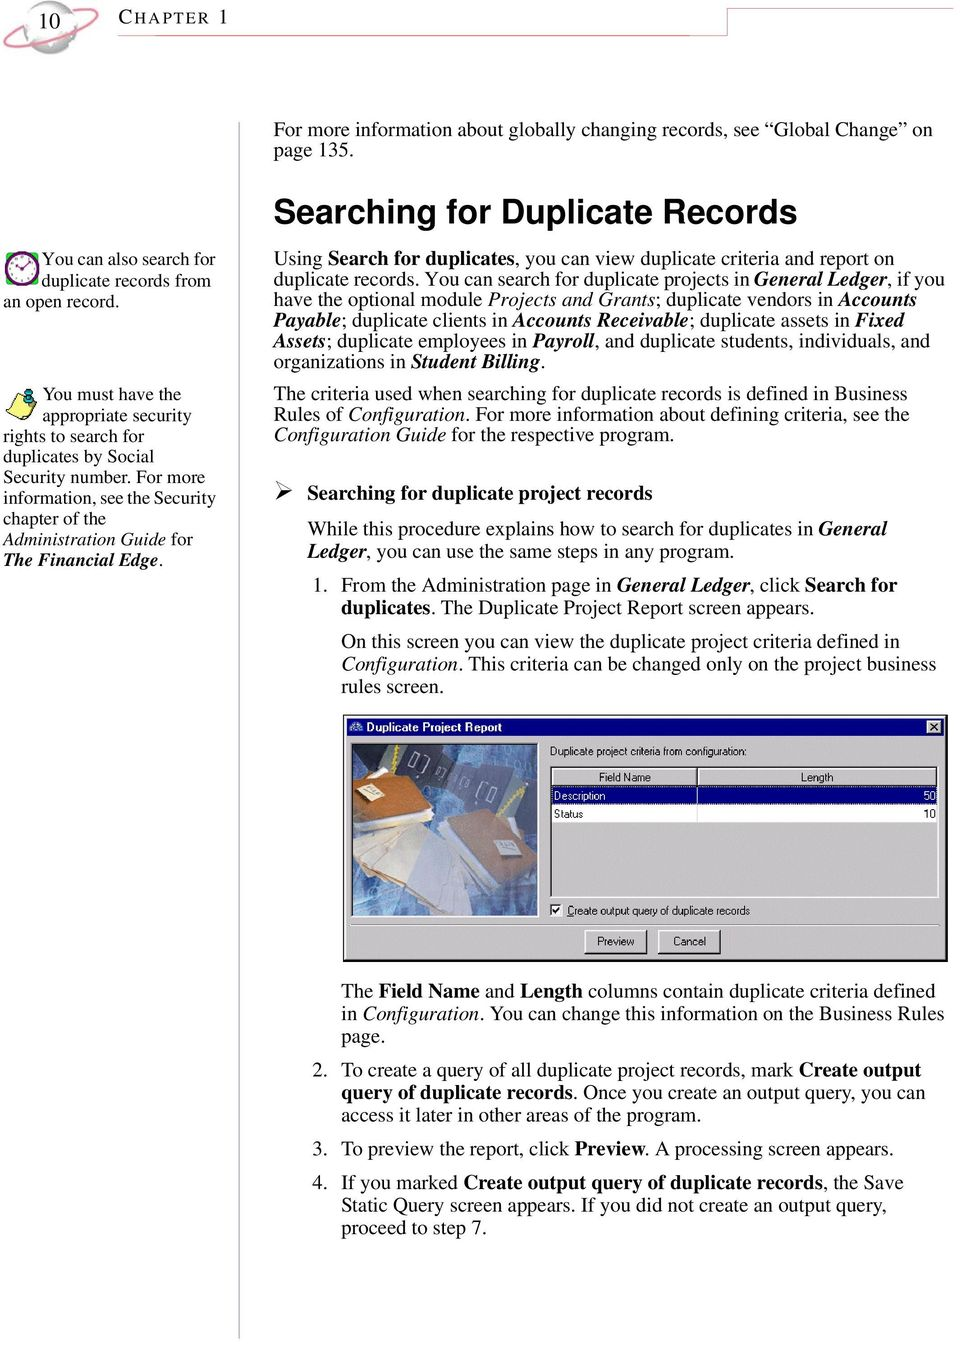 Using Search for duplicates, you can view duplicate criteria and report on duplicate records.